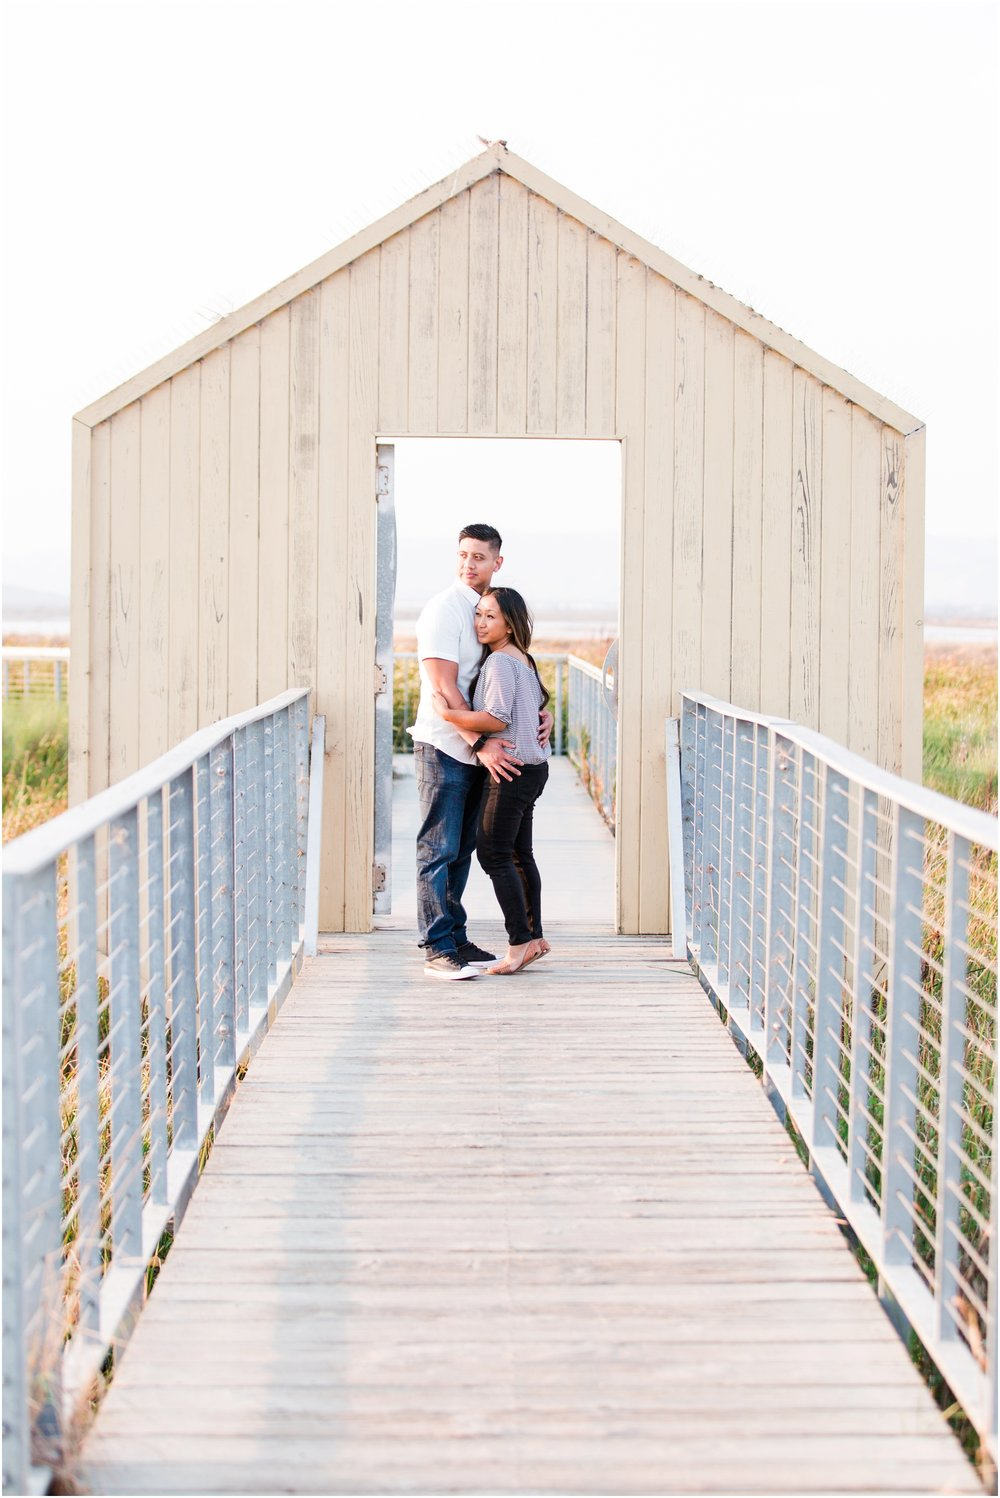 Willow Glan & Alviso Marina engagement pictures by Briana Calderon Photography_2113.jpg